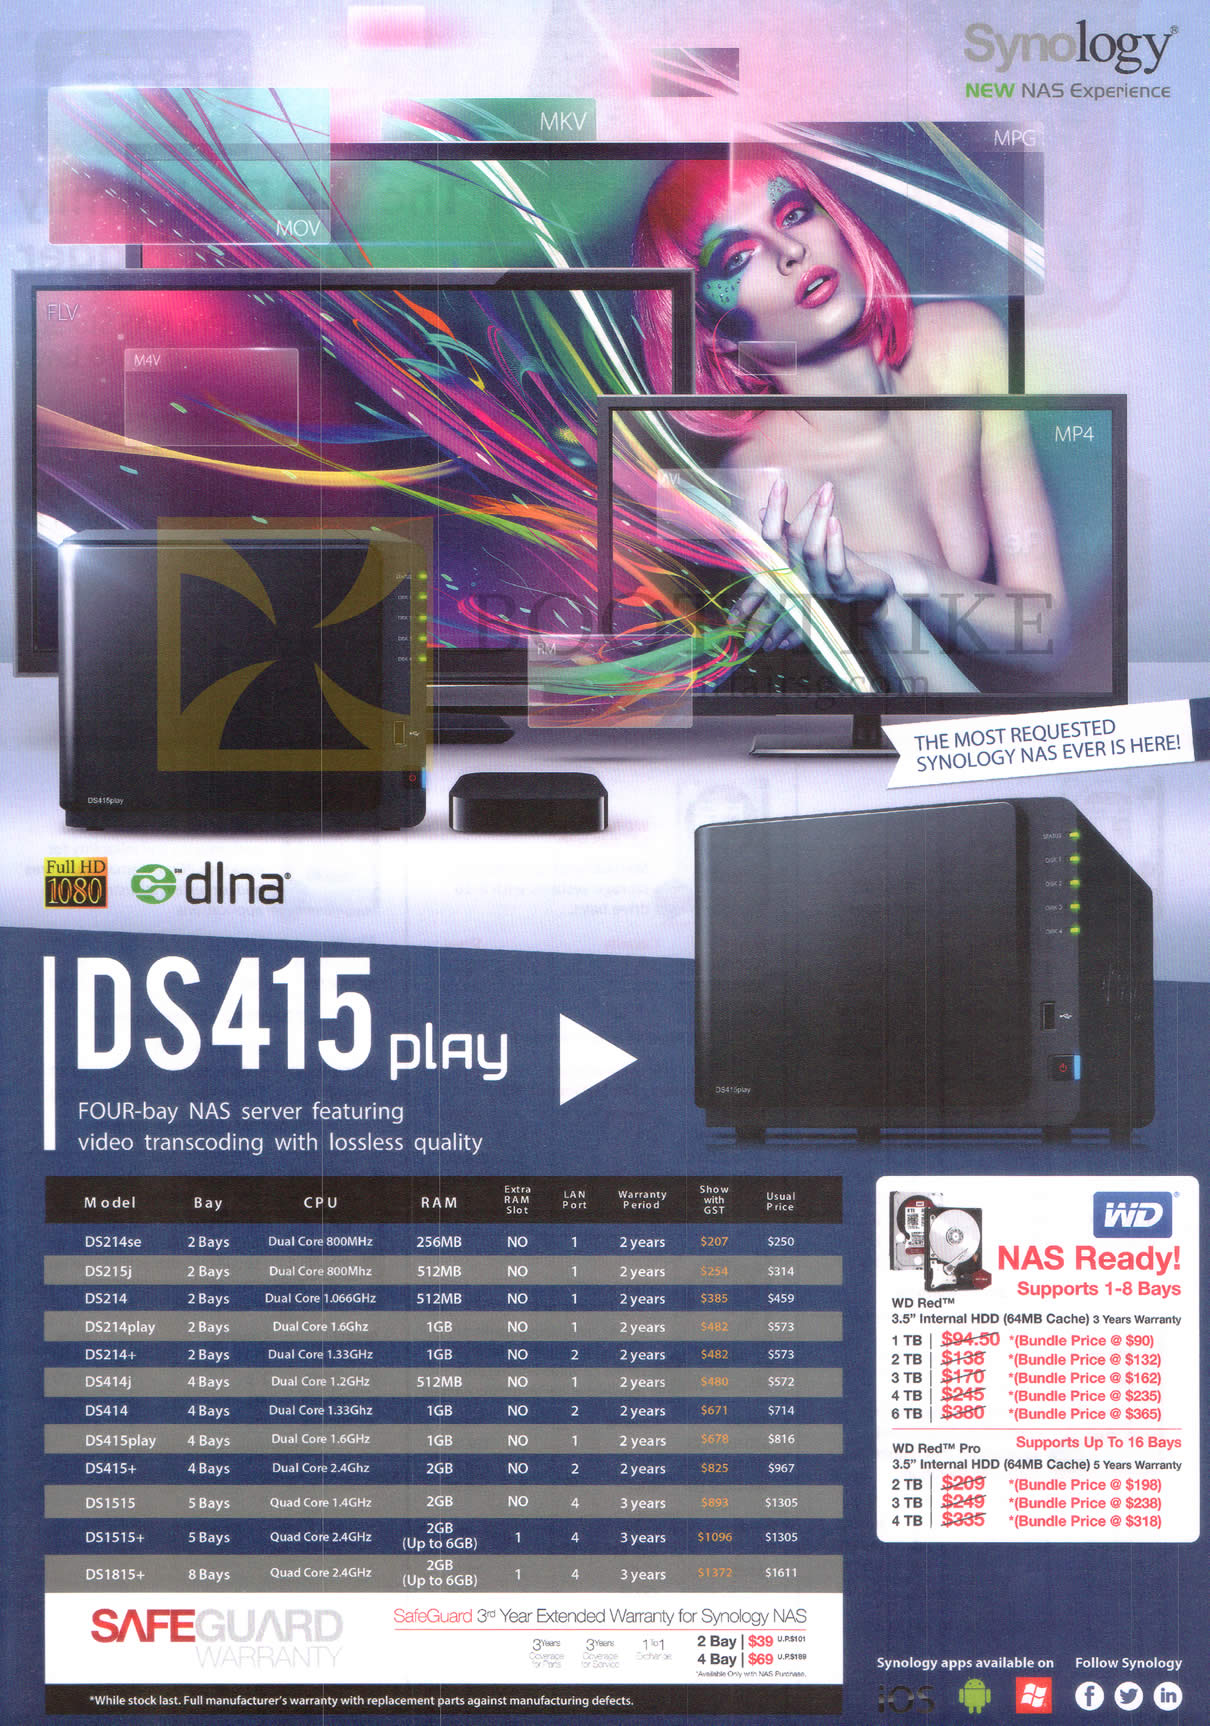 PC SHOW 2015 price list image brochure of Synology DS415 Play NAS Server